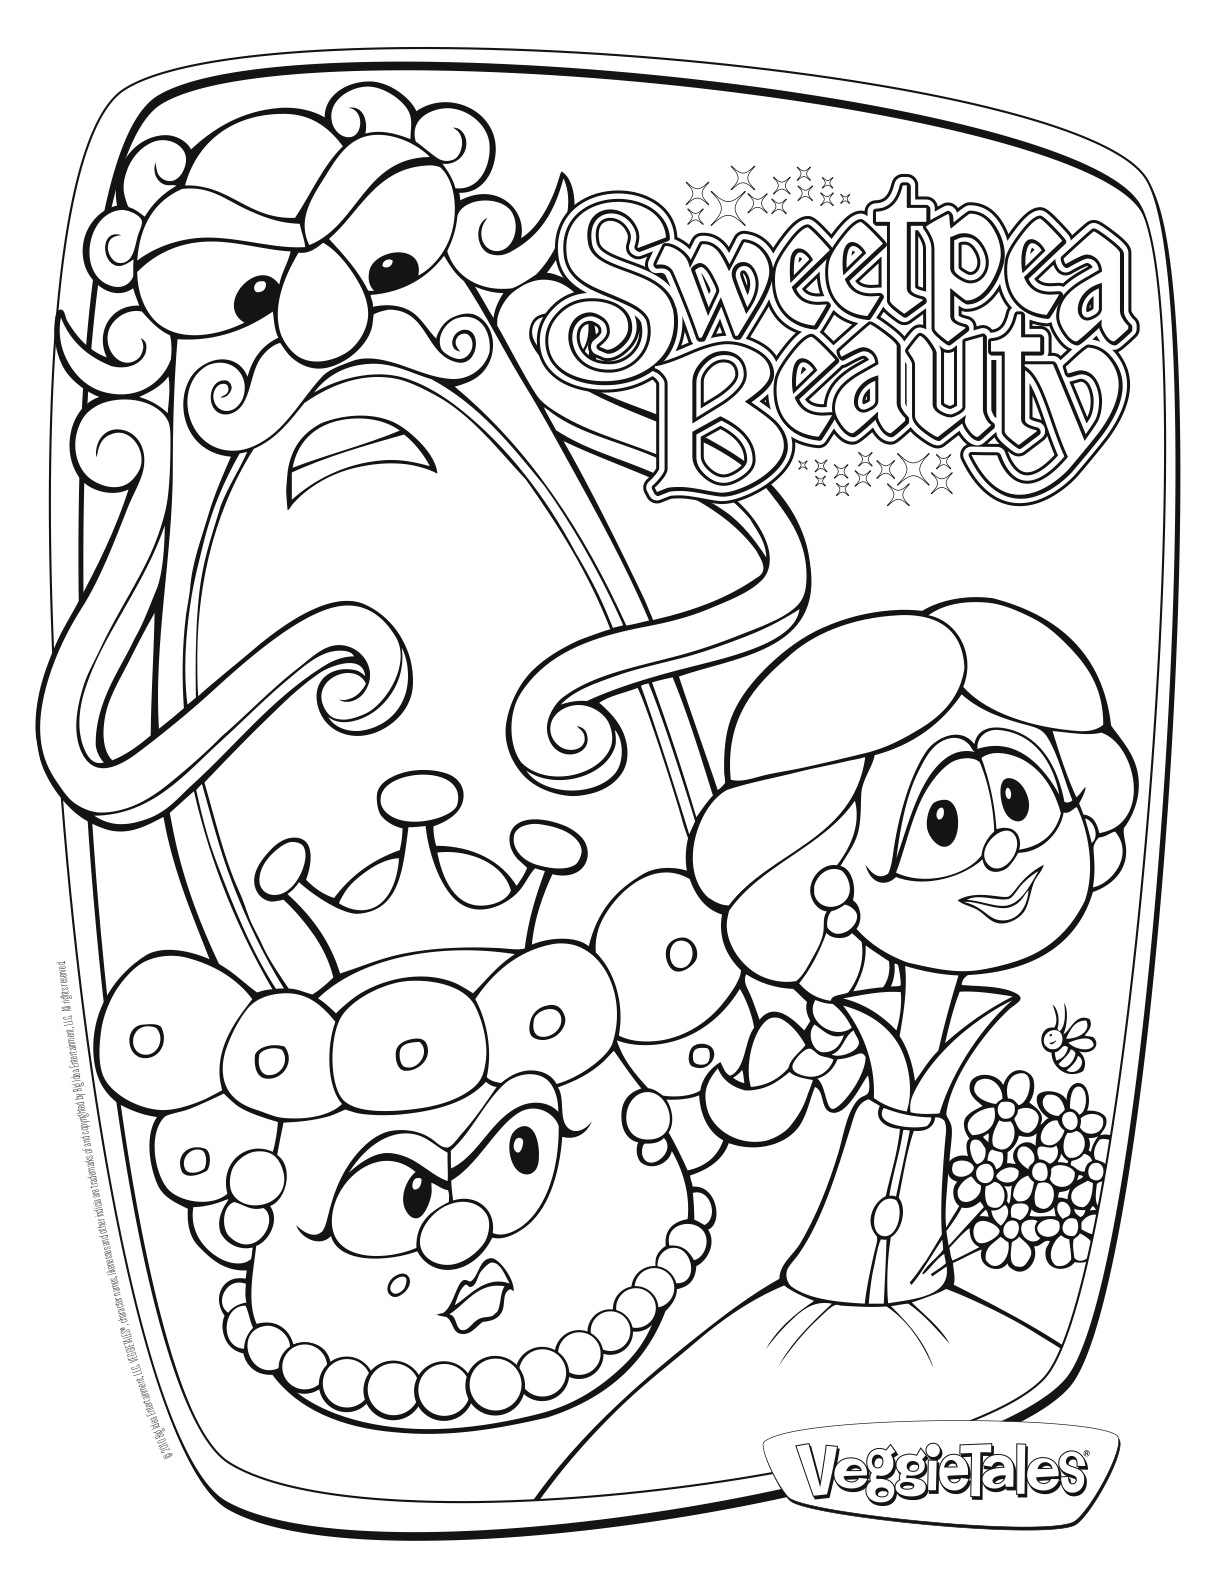 Sweet Pea Coloring Pages At Getdrawings Com Free For Personal Use